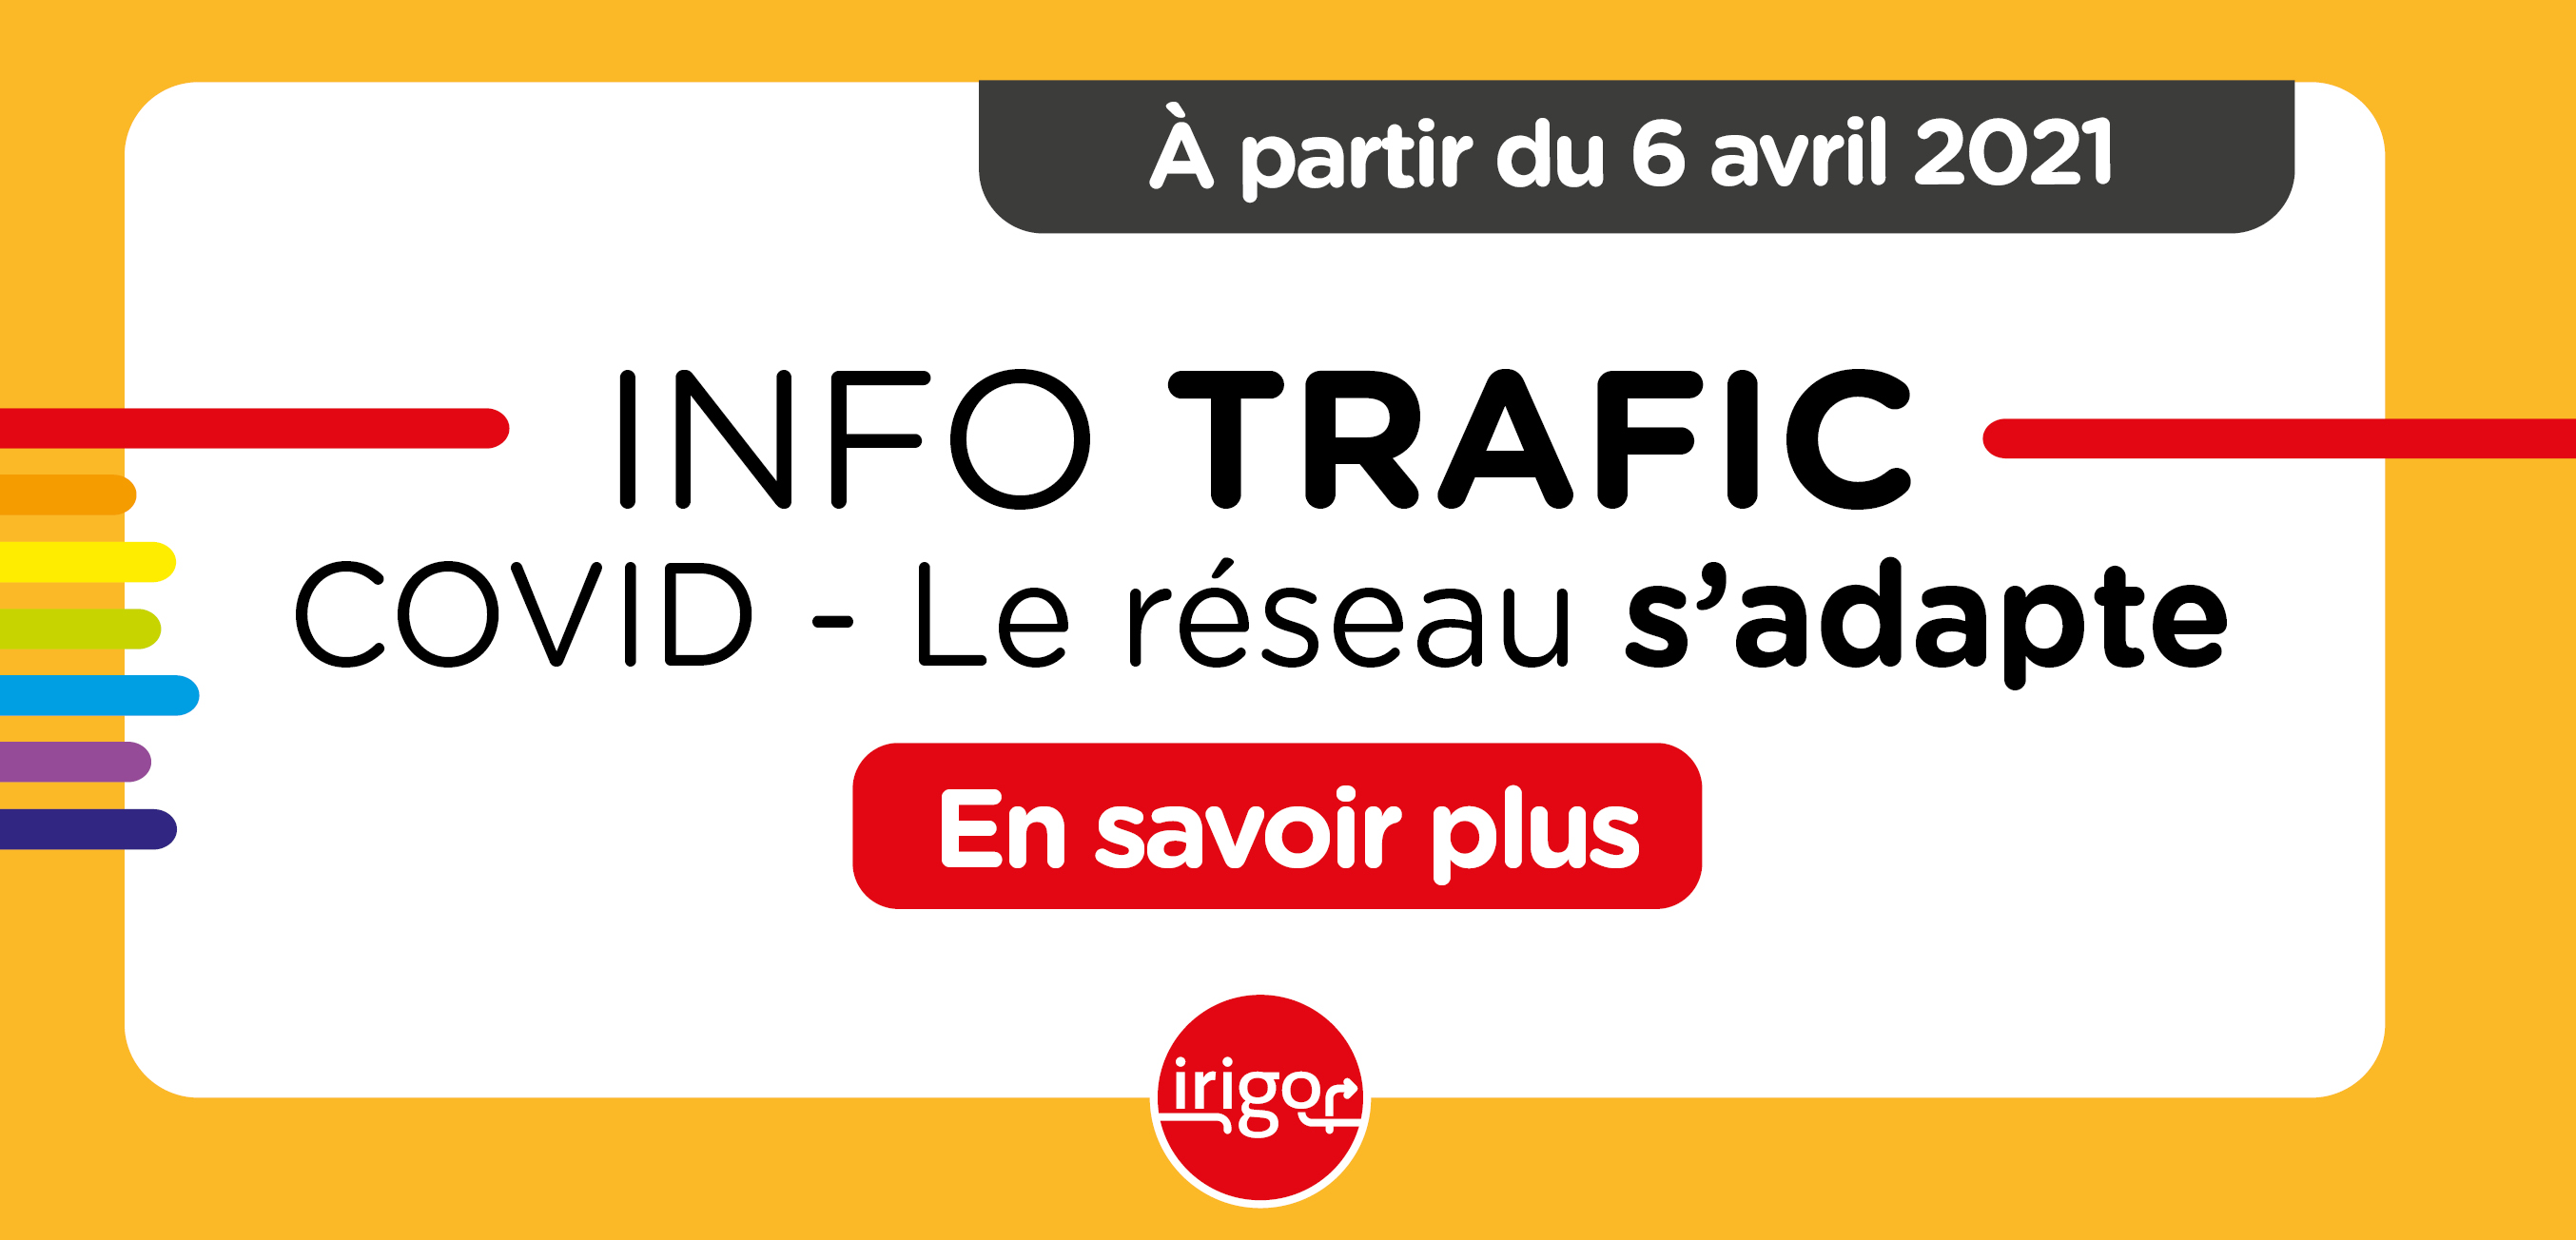 Info Trafic COVID - Changement horaires le 6 avril